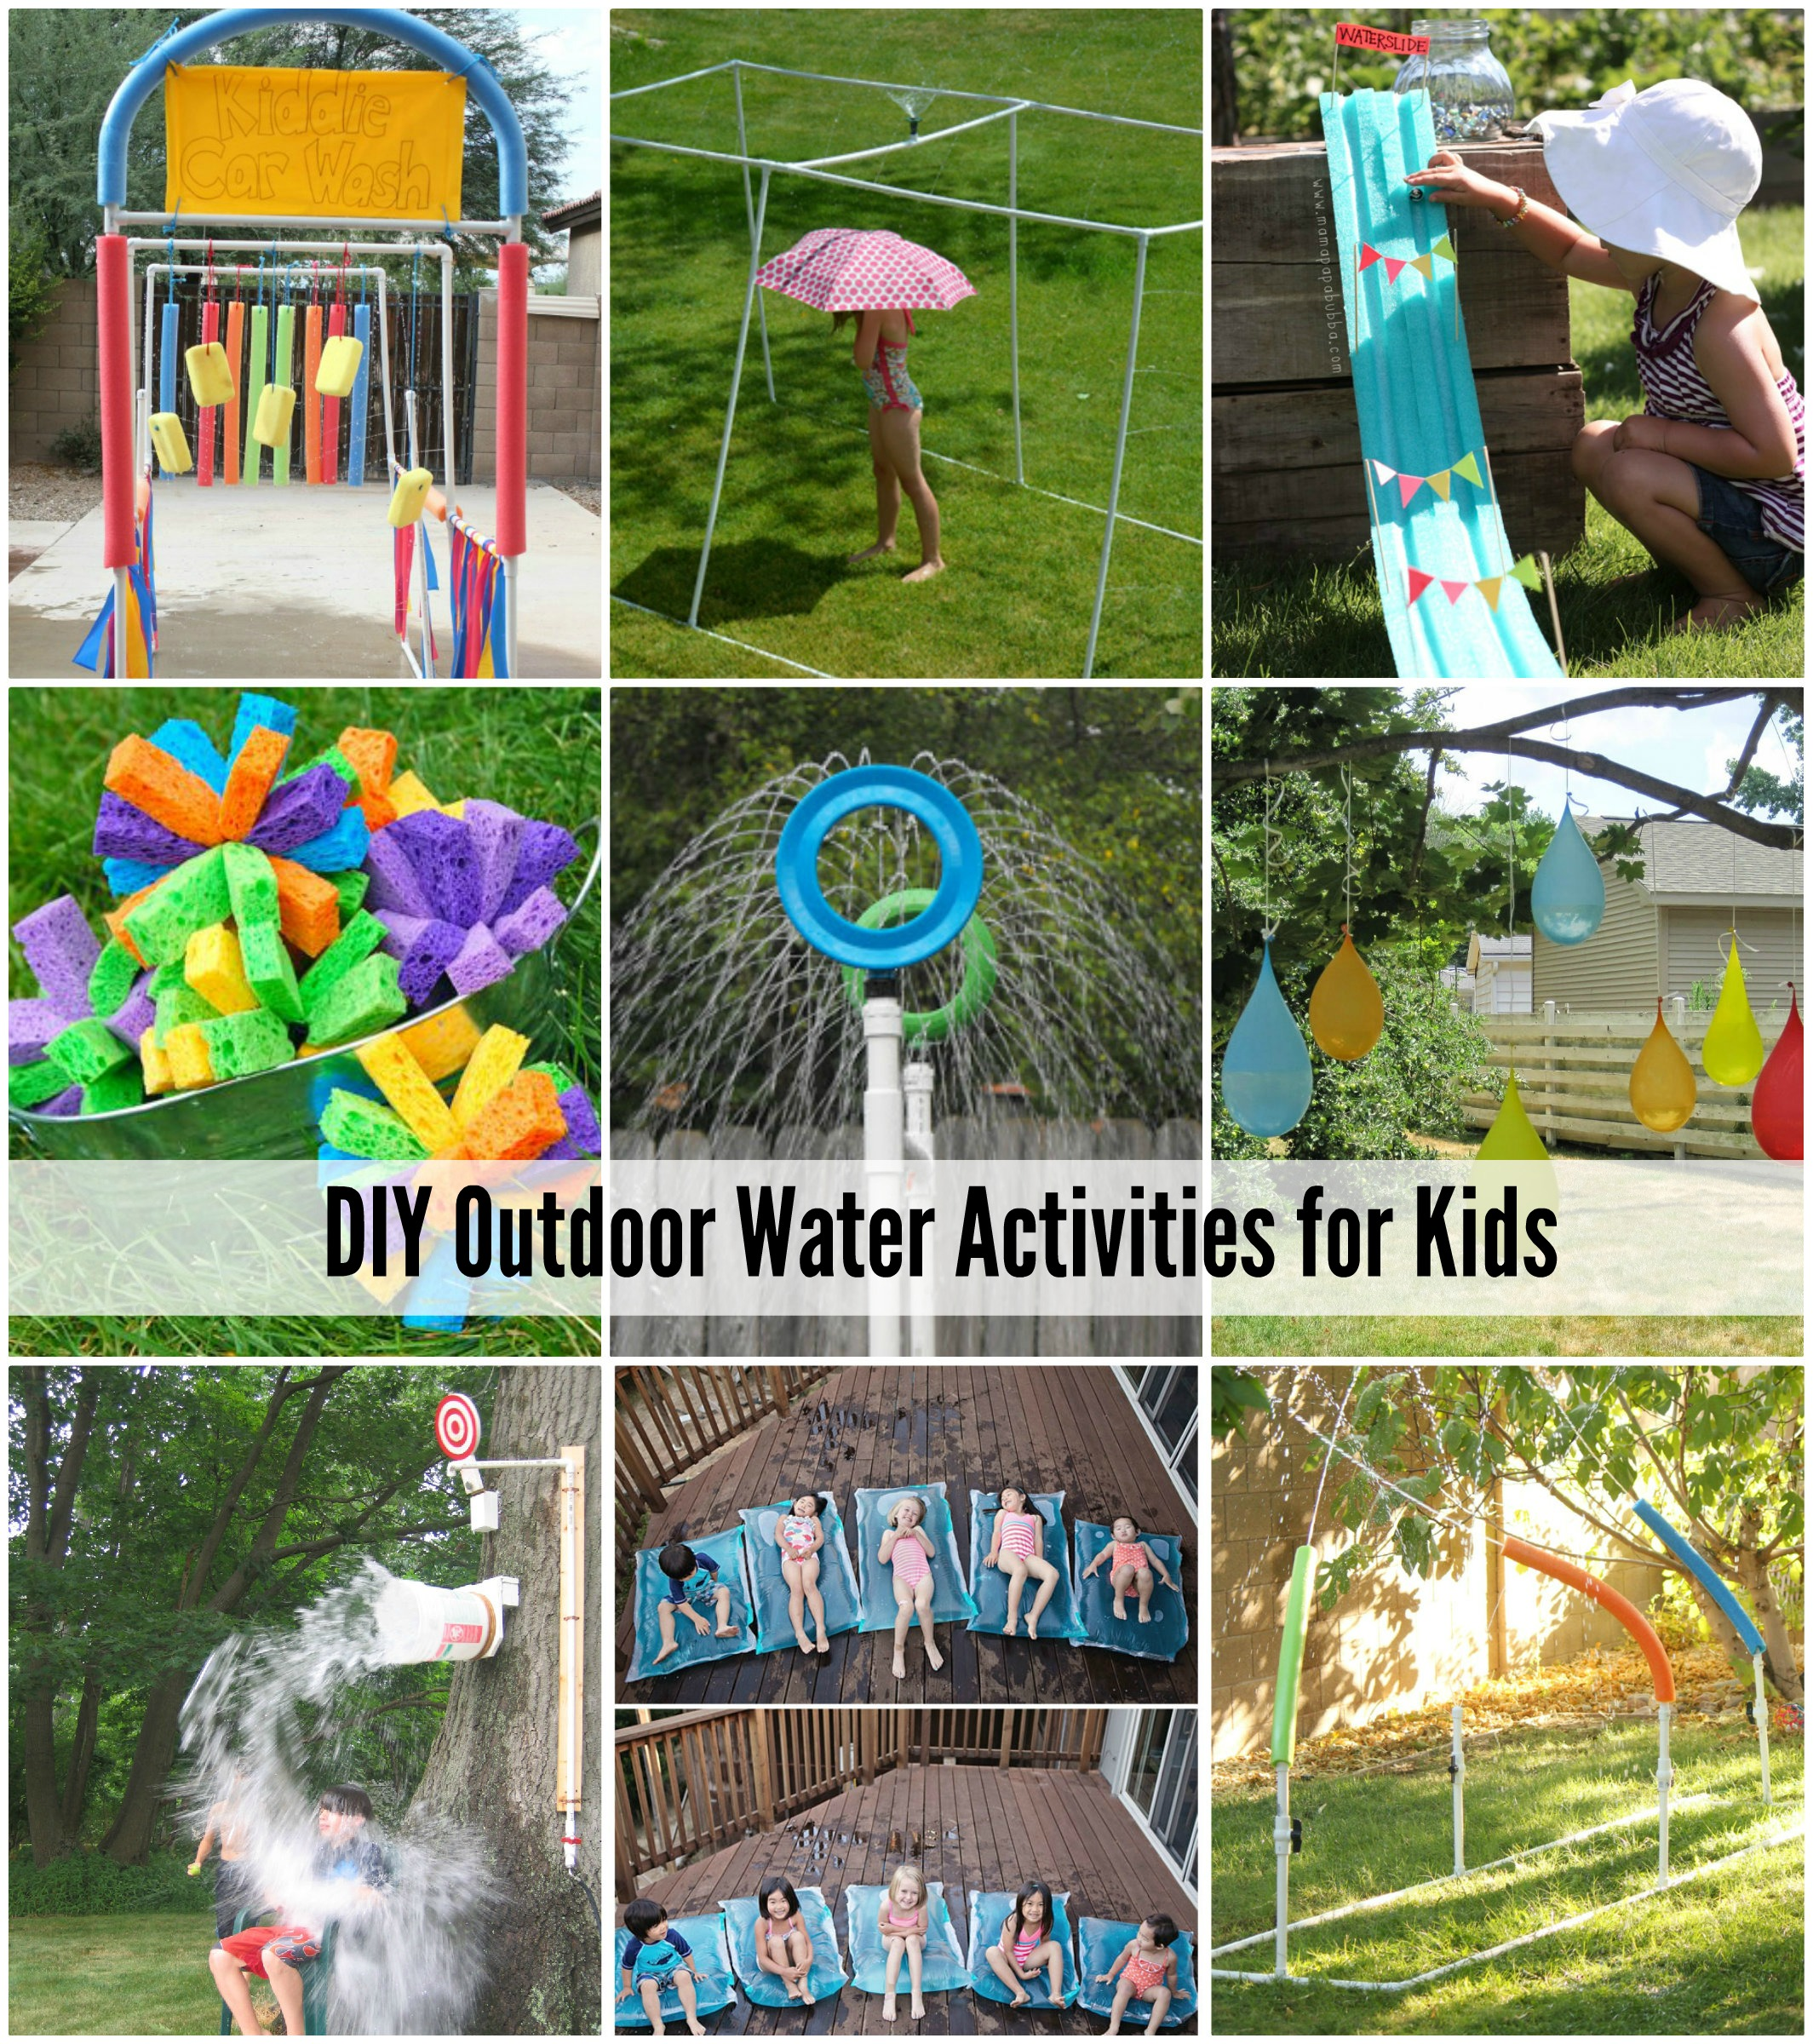 DIY Outdoor Water Activities for Kids